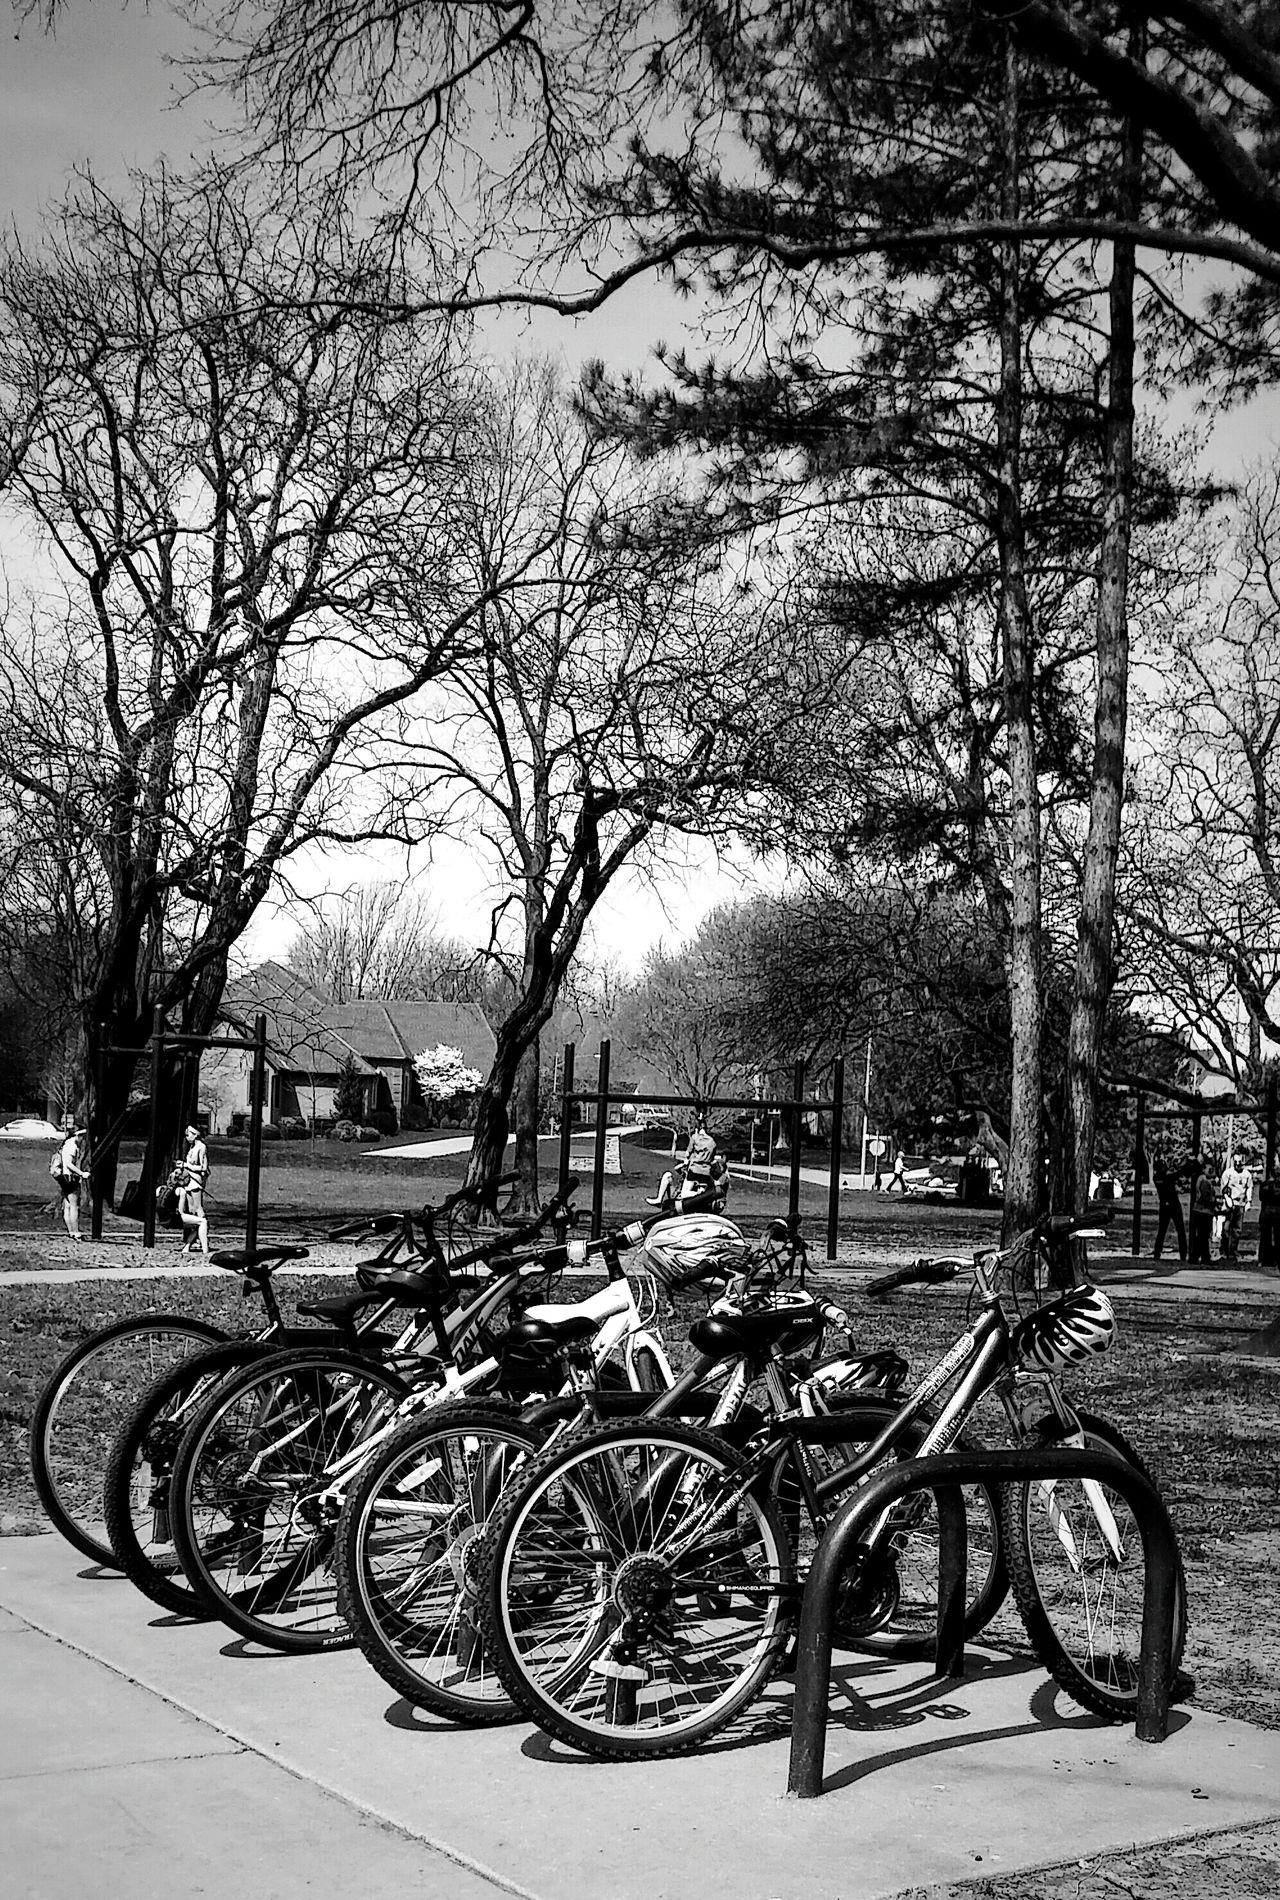 Tree Transportation Mode Of Transport Outdoors No People Day Nature Spring Day EyeEm Gallery Irwin Collection Bikes Bike Riding Spring Photography Bicycle Adventures Welcome To Black Black And White Photography Sky Parks And Recreation EyeEm Diversity Let's Go Smarter